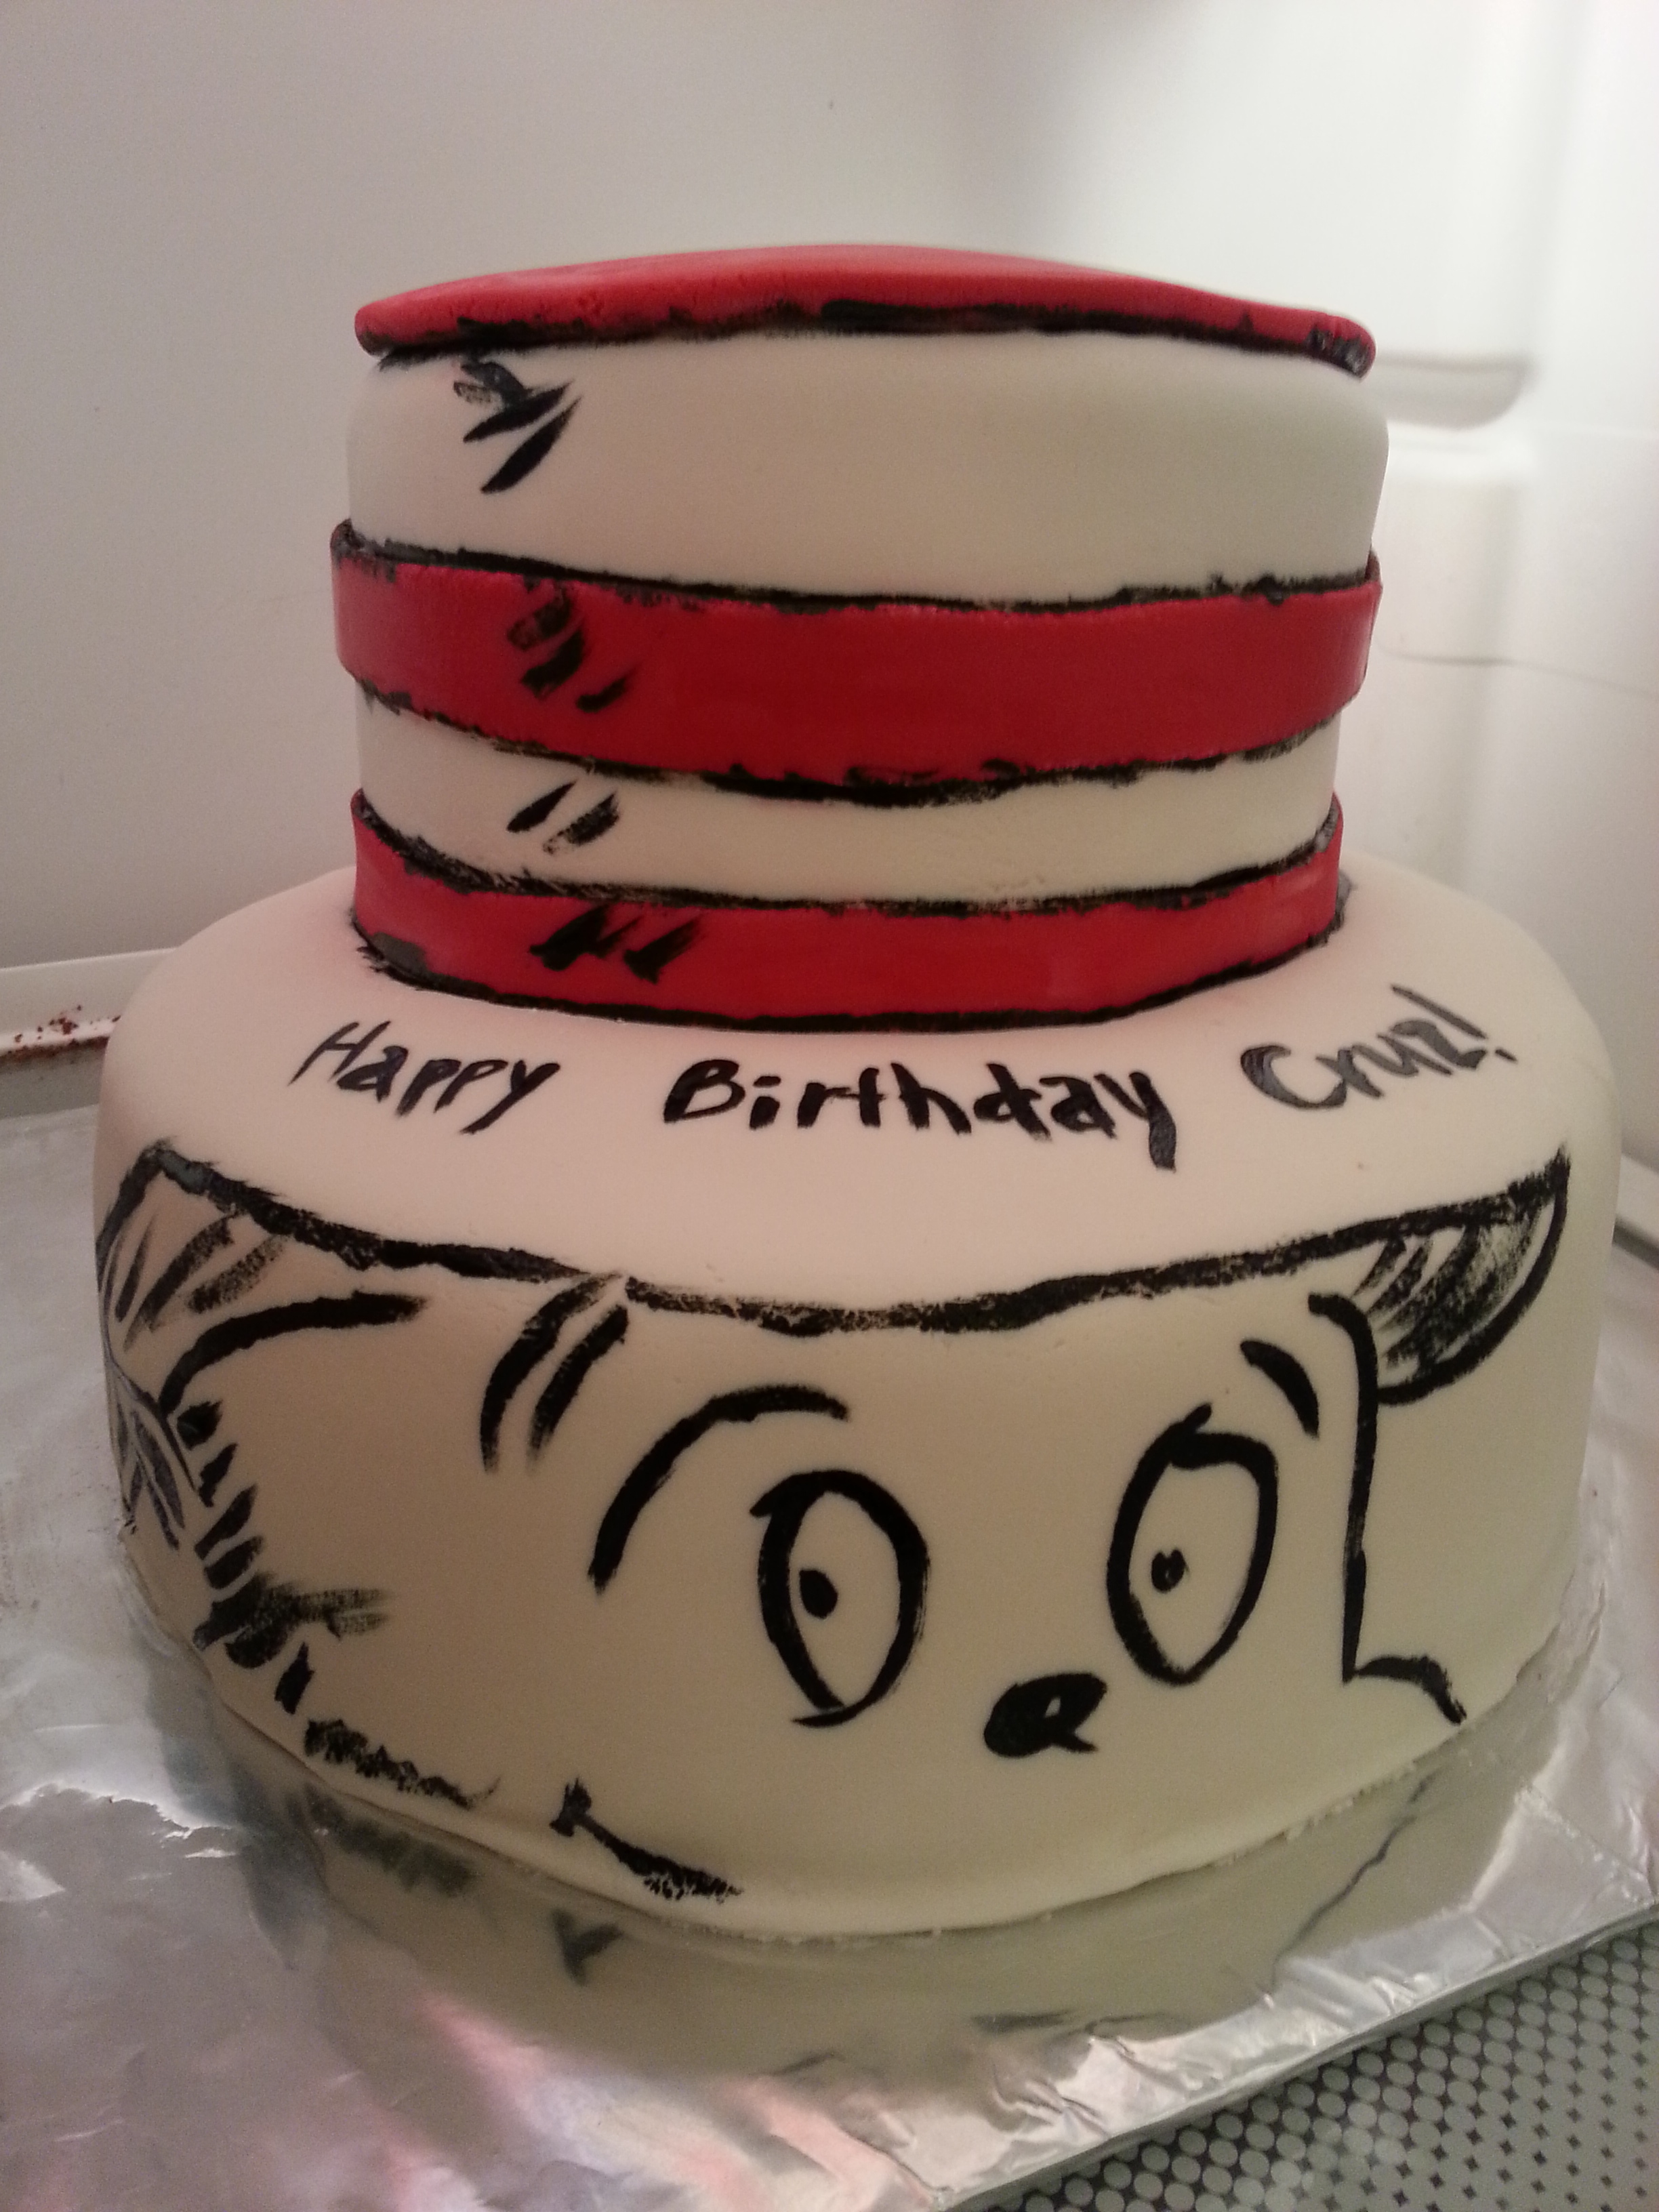 2) The Cat in the Hat:  I love Dr. Seuss. I always have and always will love him, so I jumped at the chance to create this one.